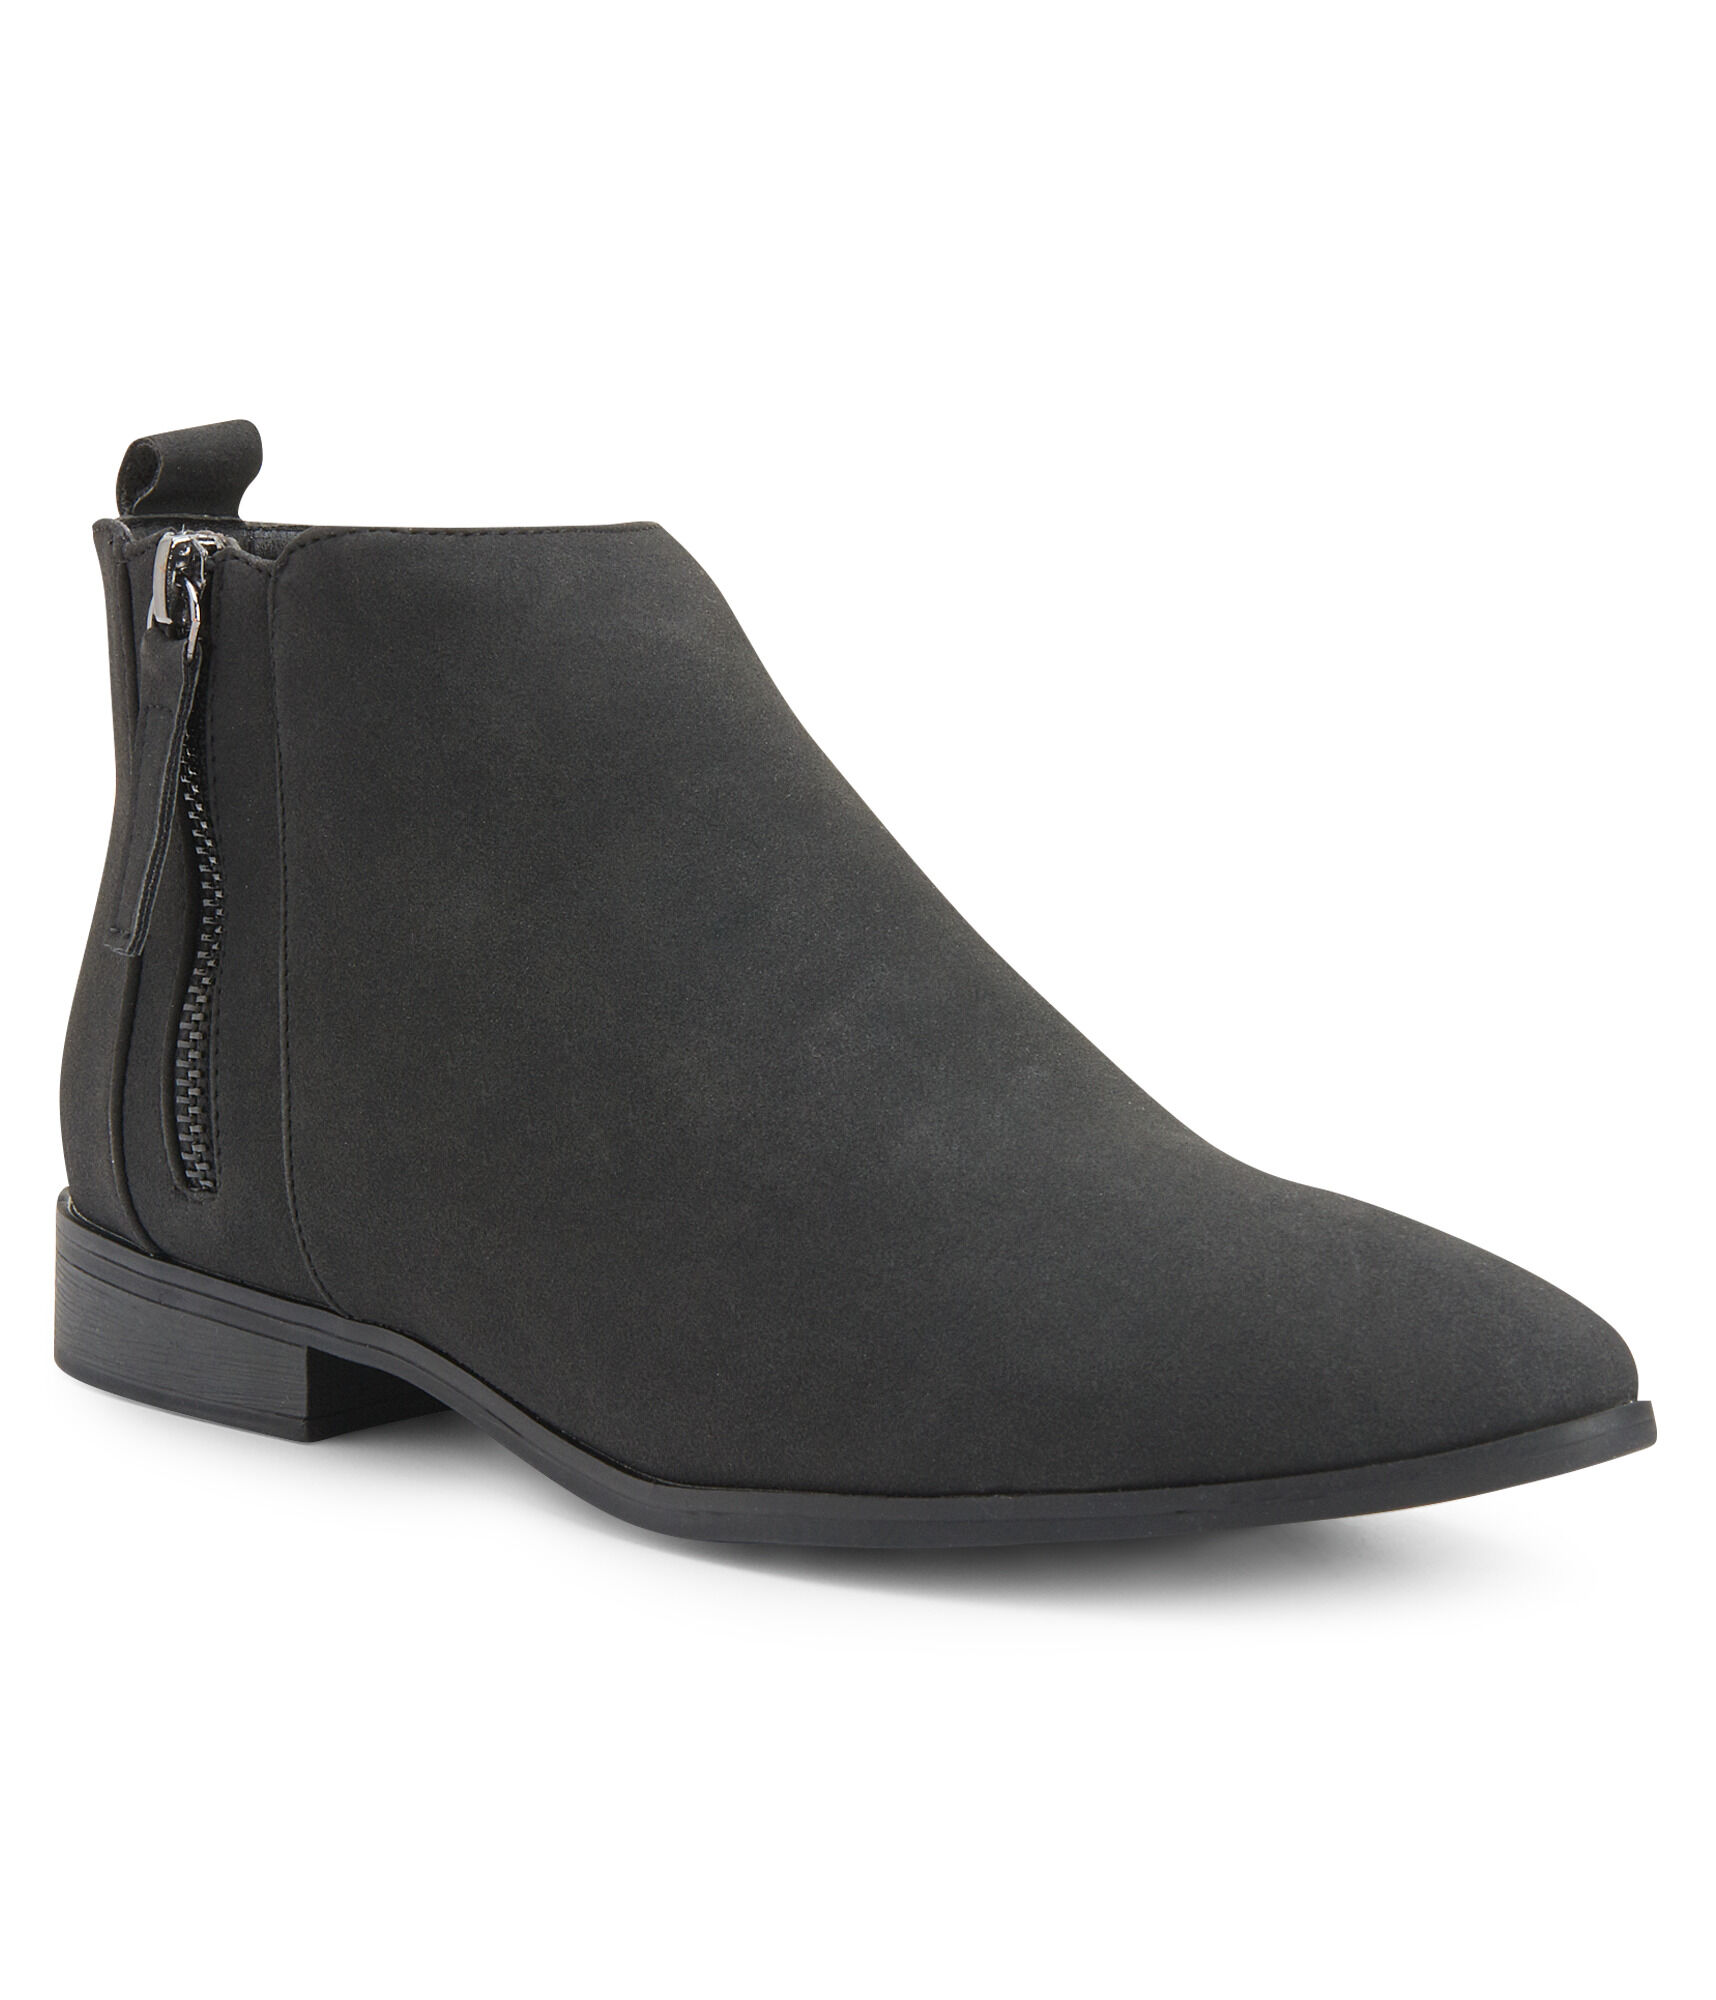 f06d59475fb64 ... Black Faux Suede Ankle Booties ...